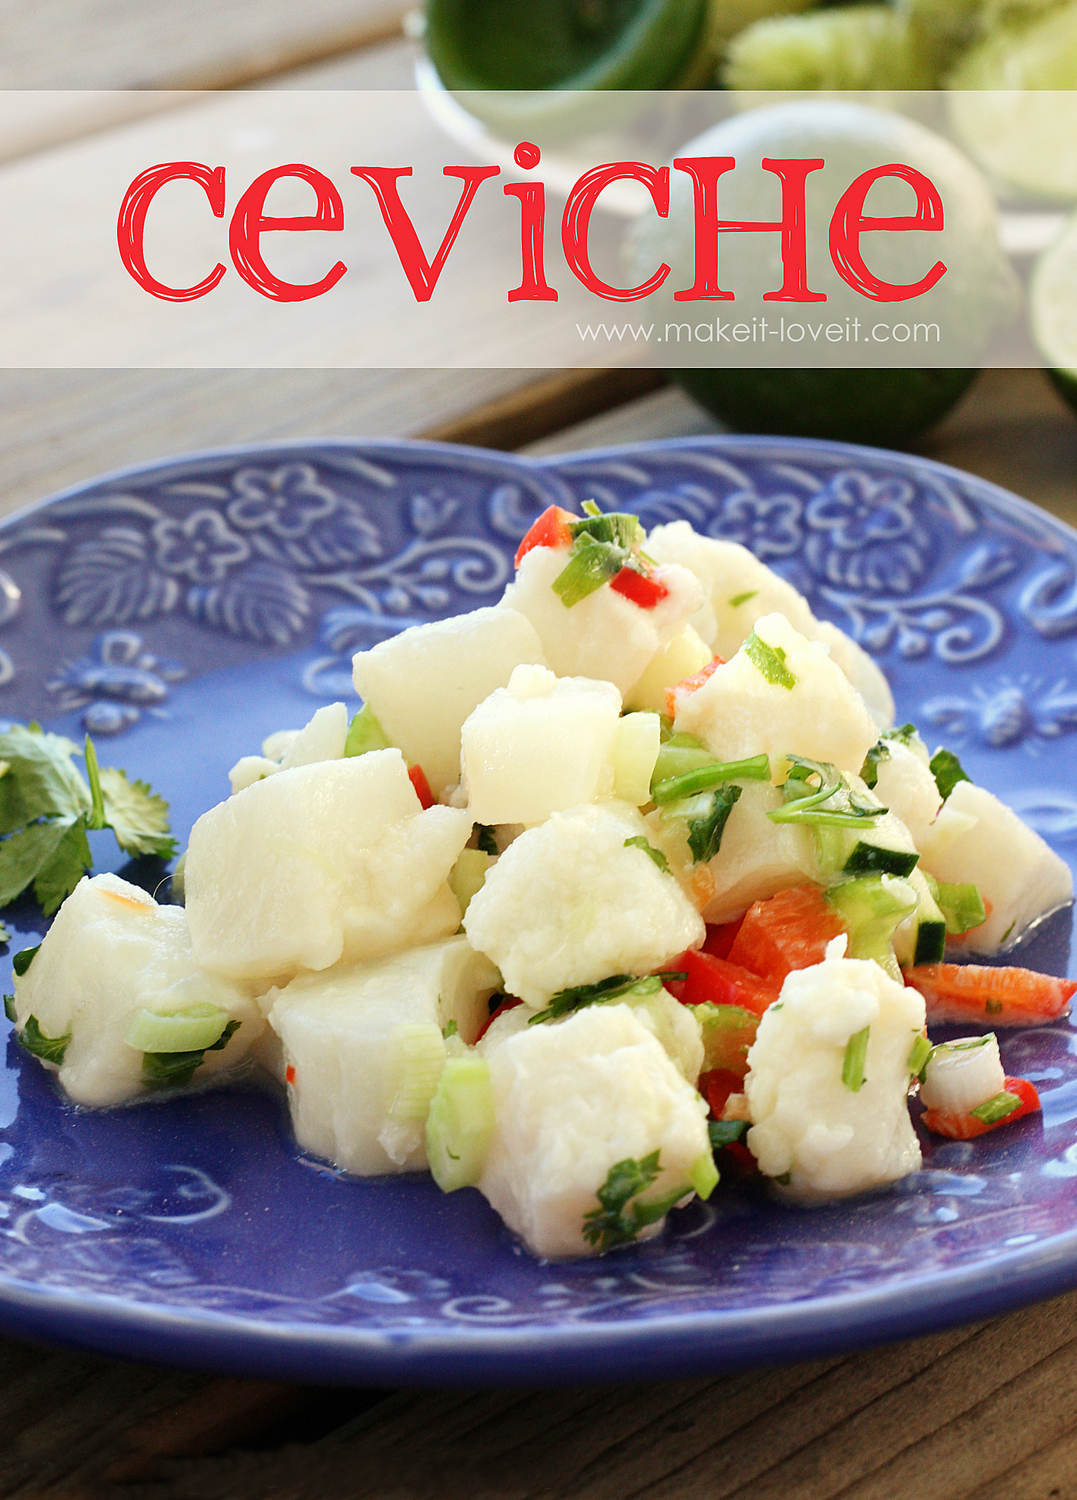 Ceviche…a light and delicious summertime dish!